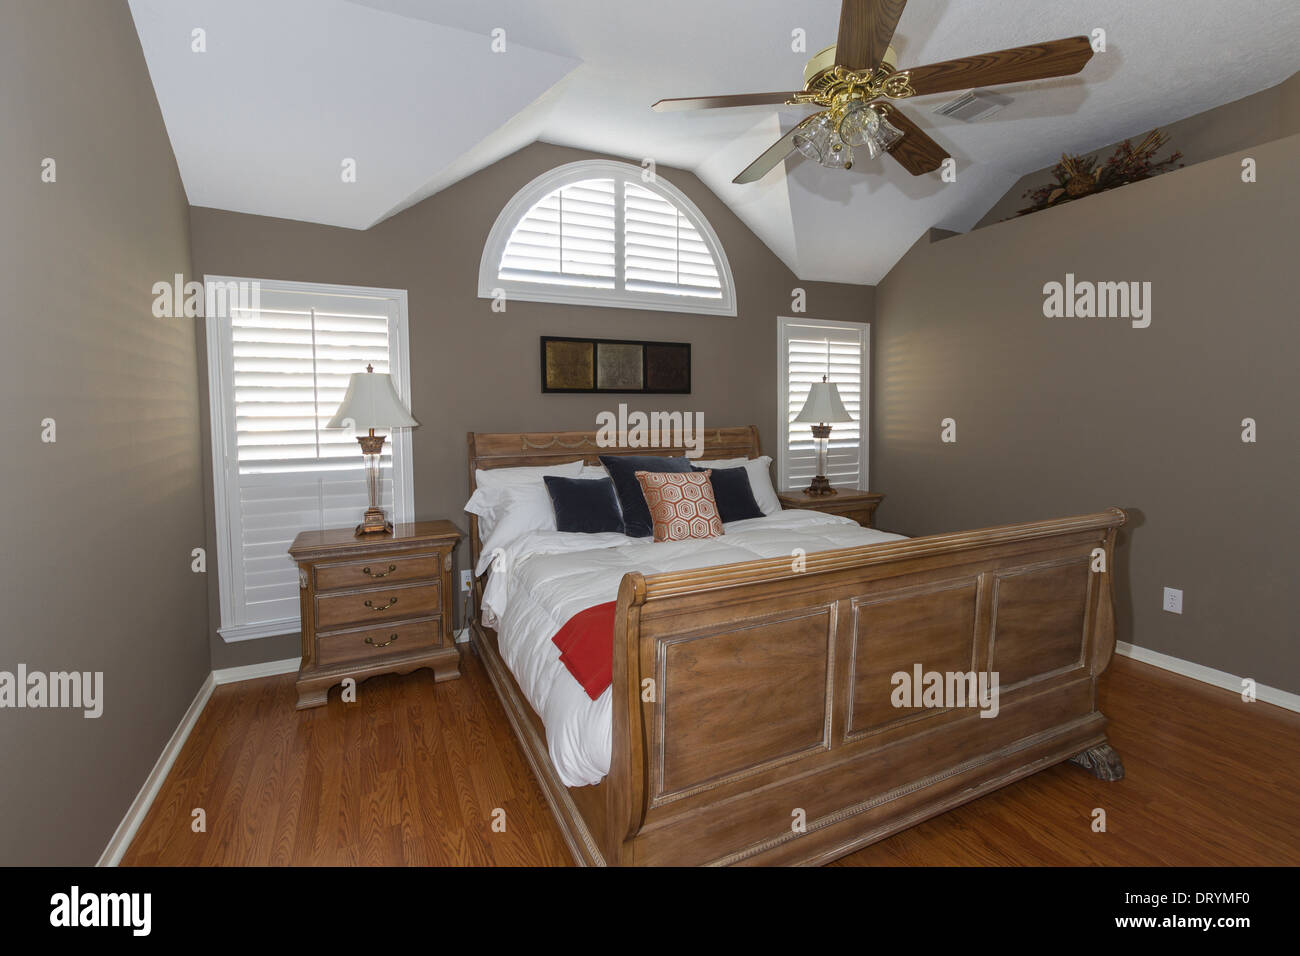 Ceiling Fan Home Stockfotos & Ceiling Fan Home Bilder - Seite 3 - Alamy